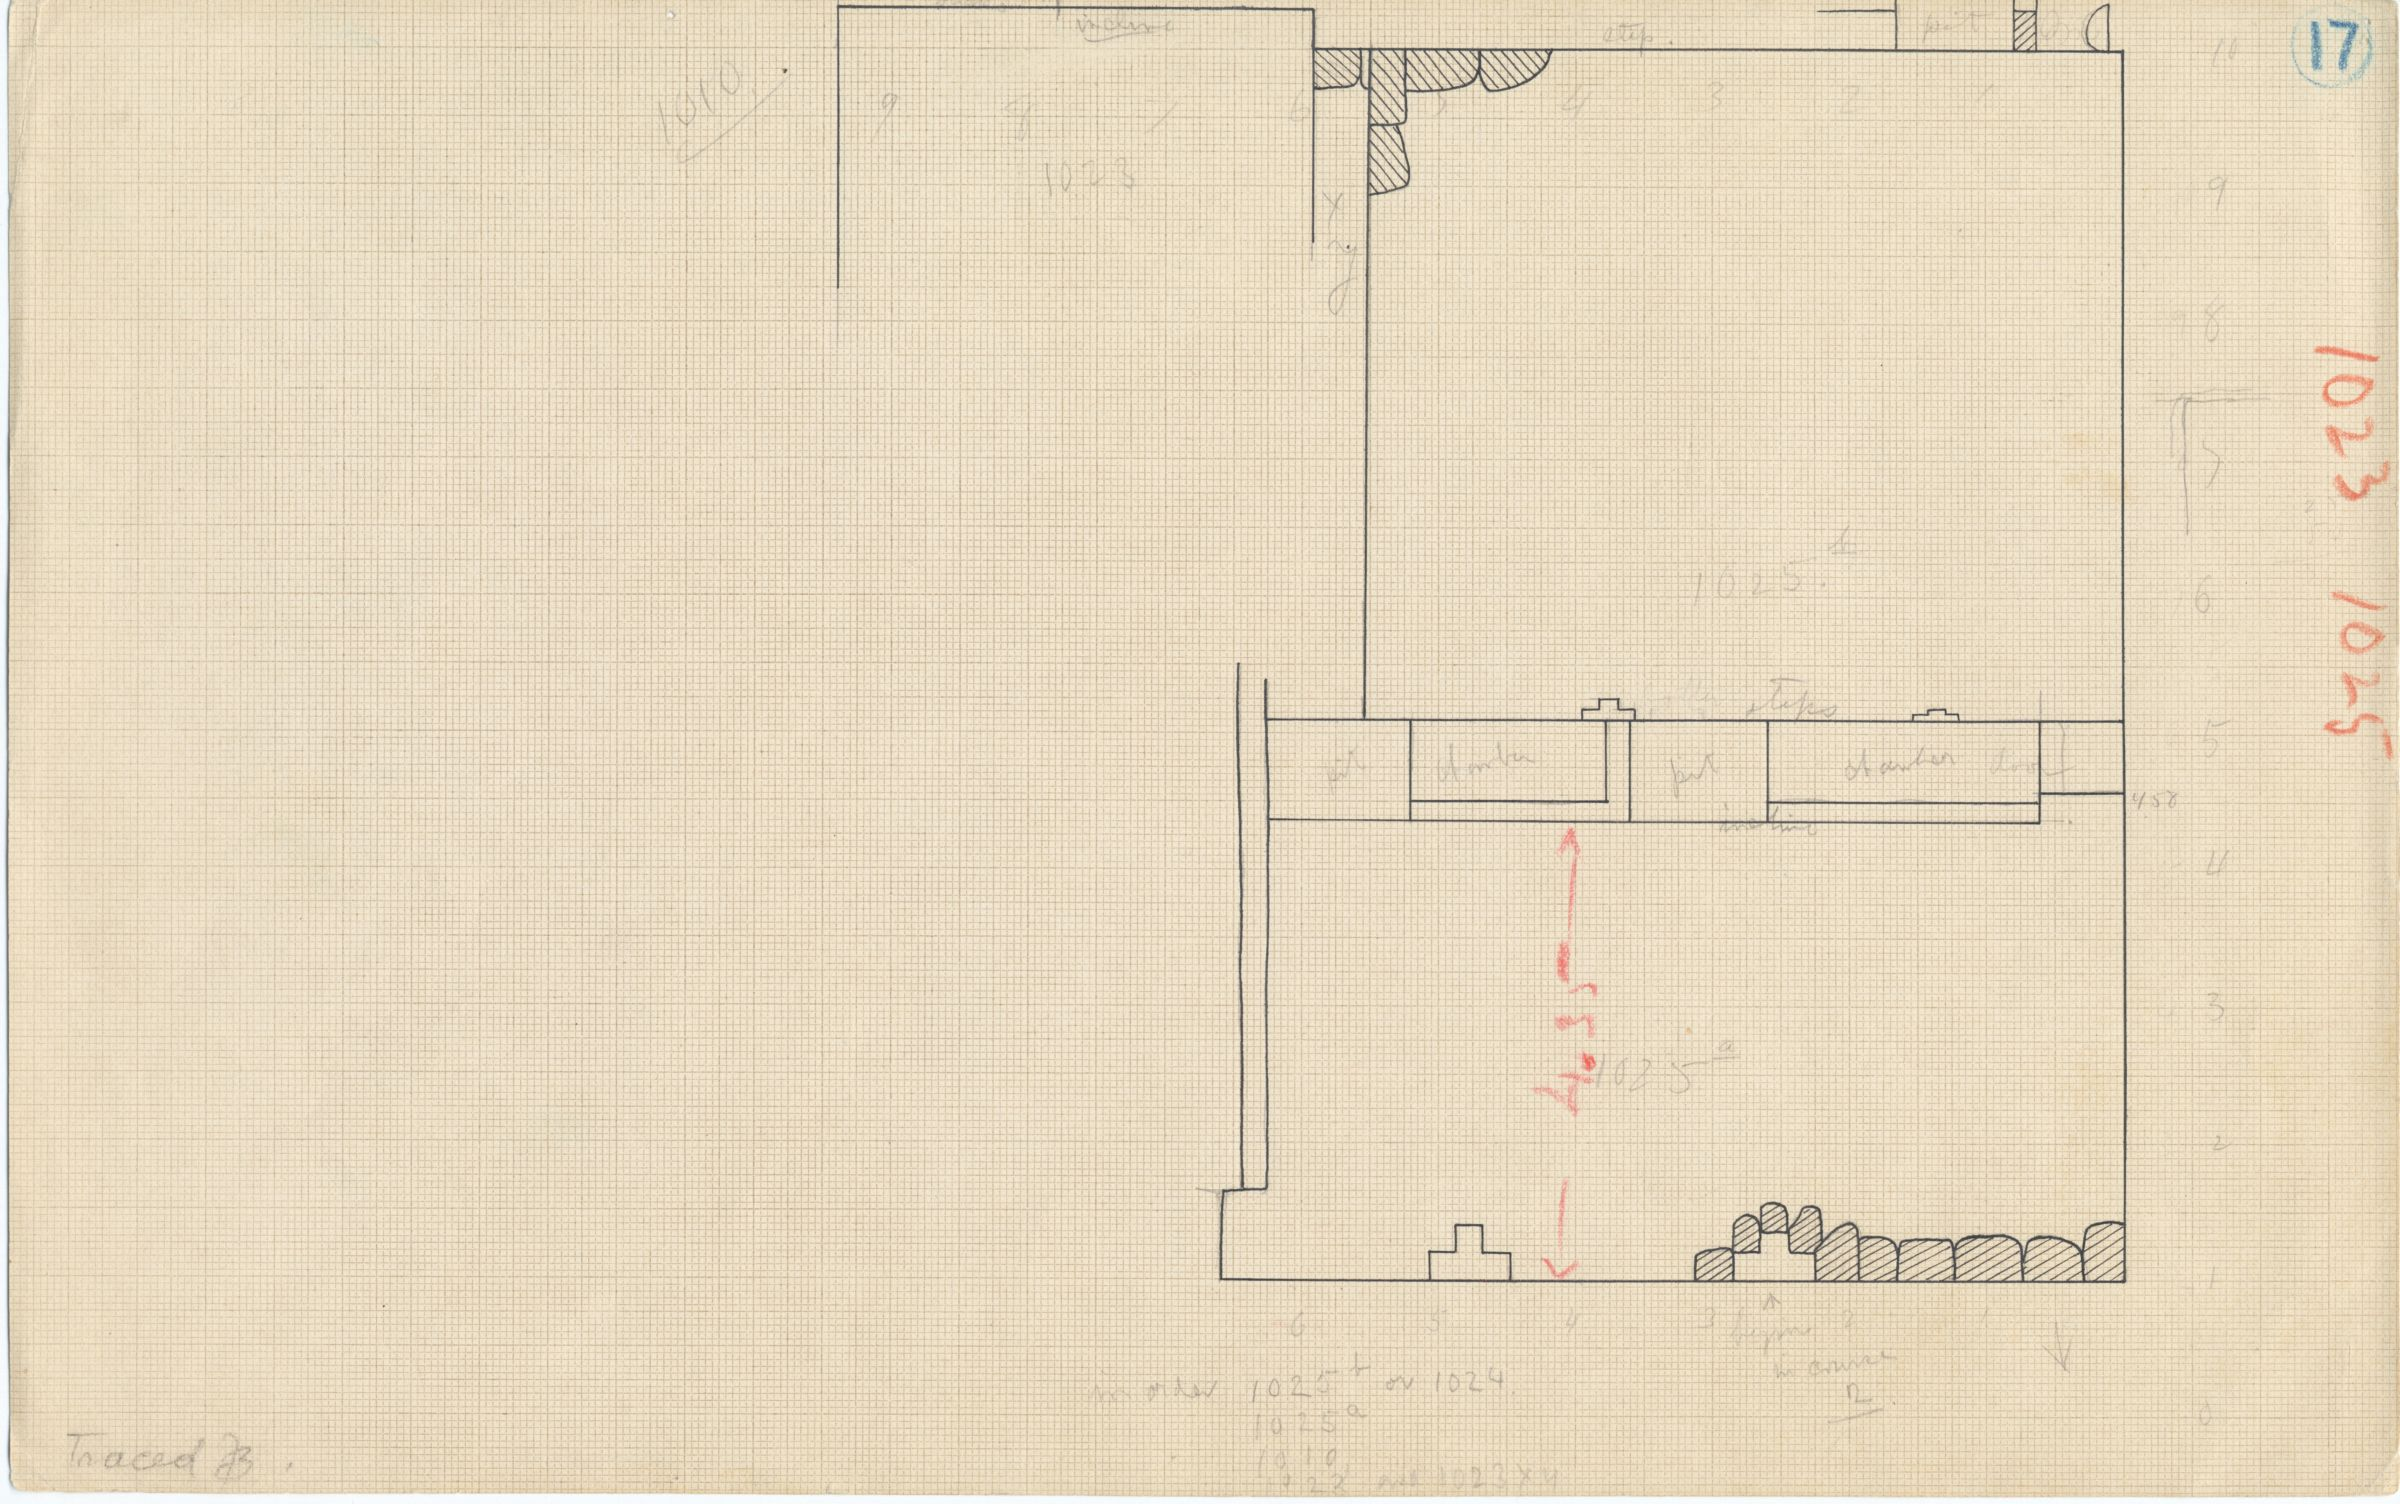 Maps and plans: G 1025 (G 1025a & G 1025b), Plan